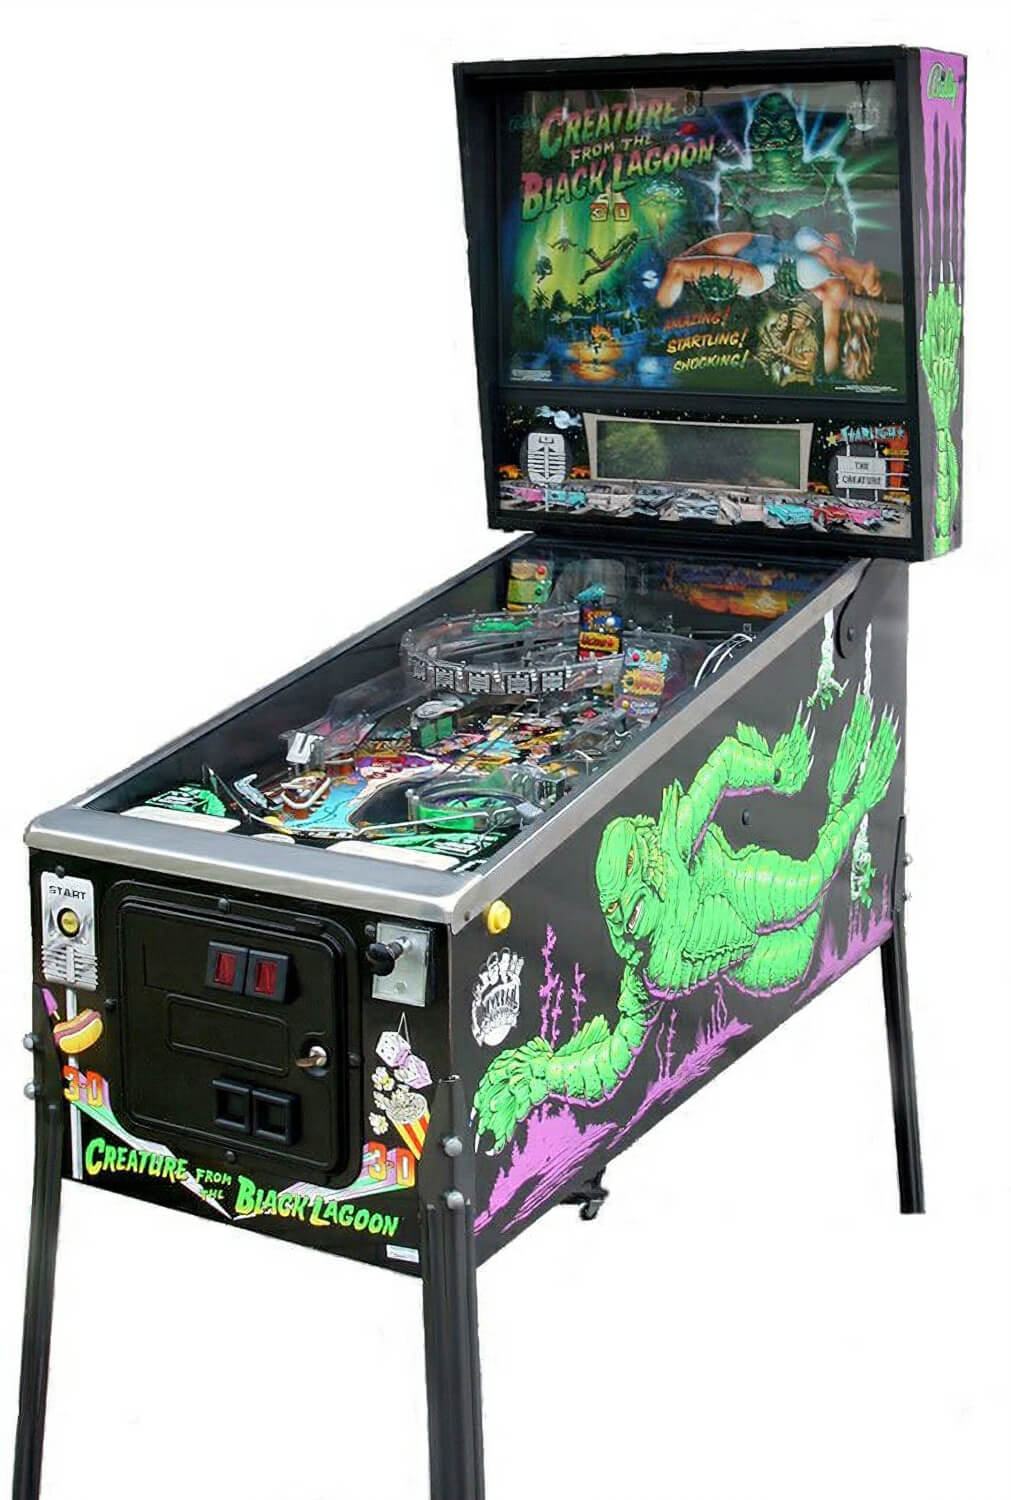 Hockey Tables For Sale Creature From The Black Lagoon Pinball Machine | Liberty Games